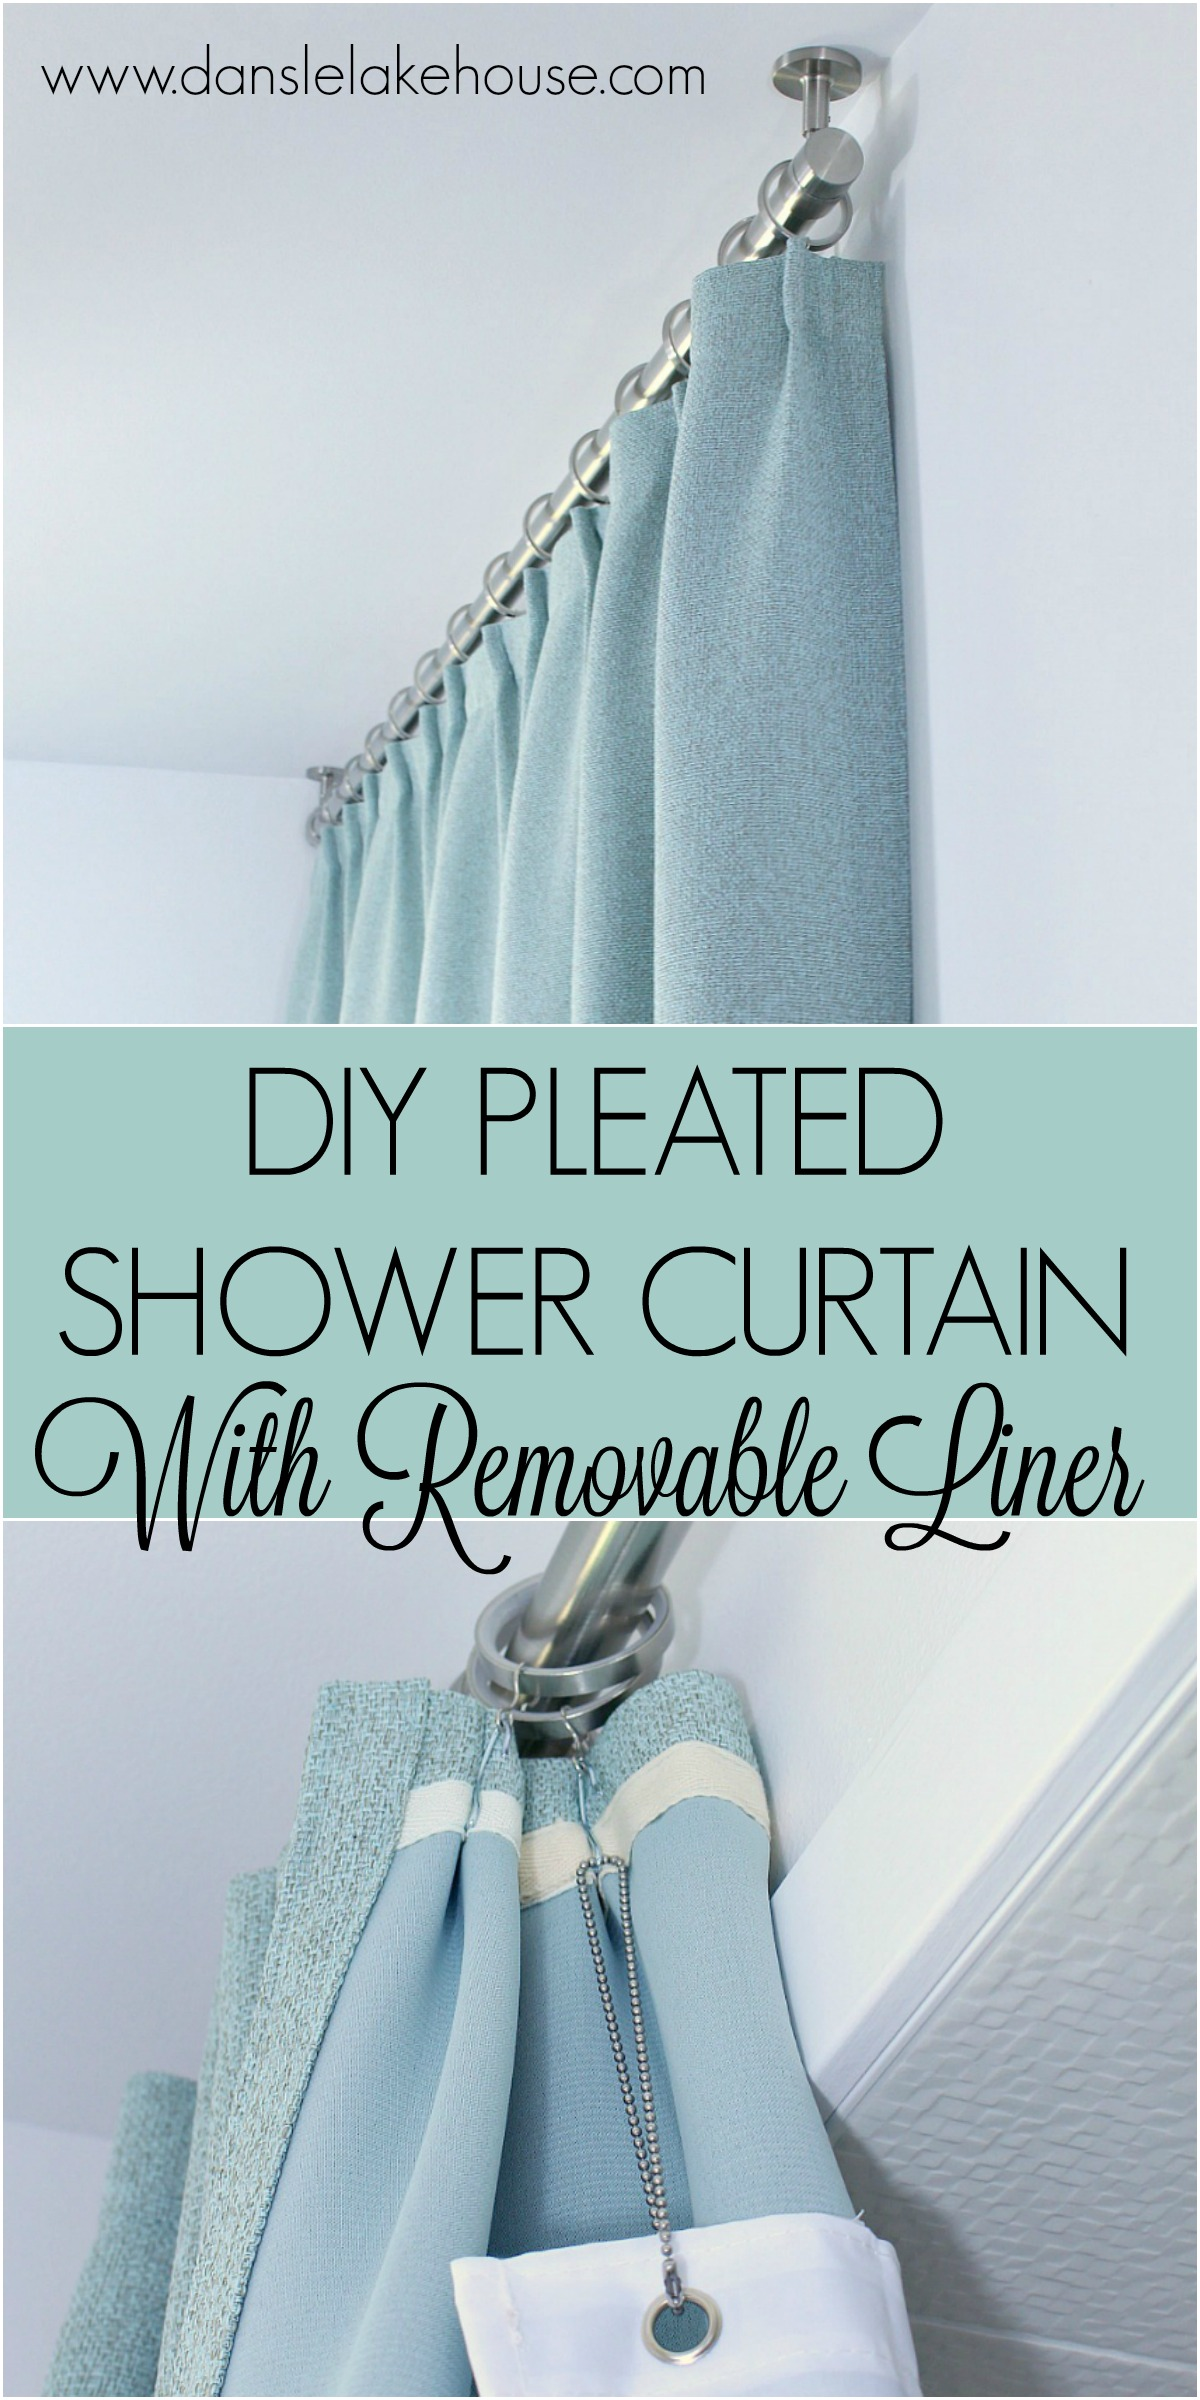 Bathroom Update: Ceiling Mounted Shower Curtain Rod + DIY Pleated Shower Curtain